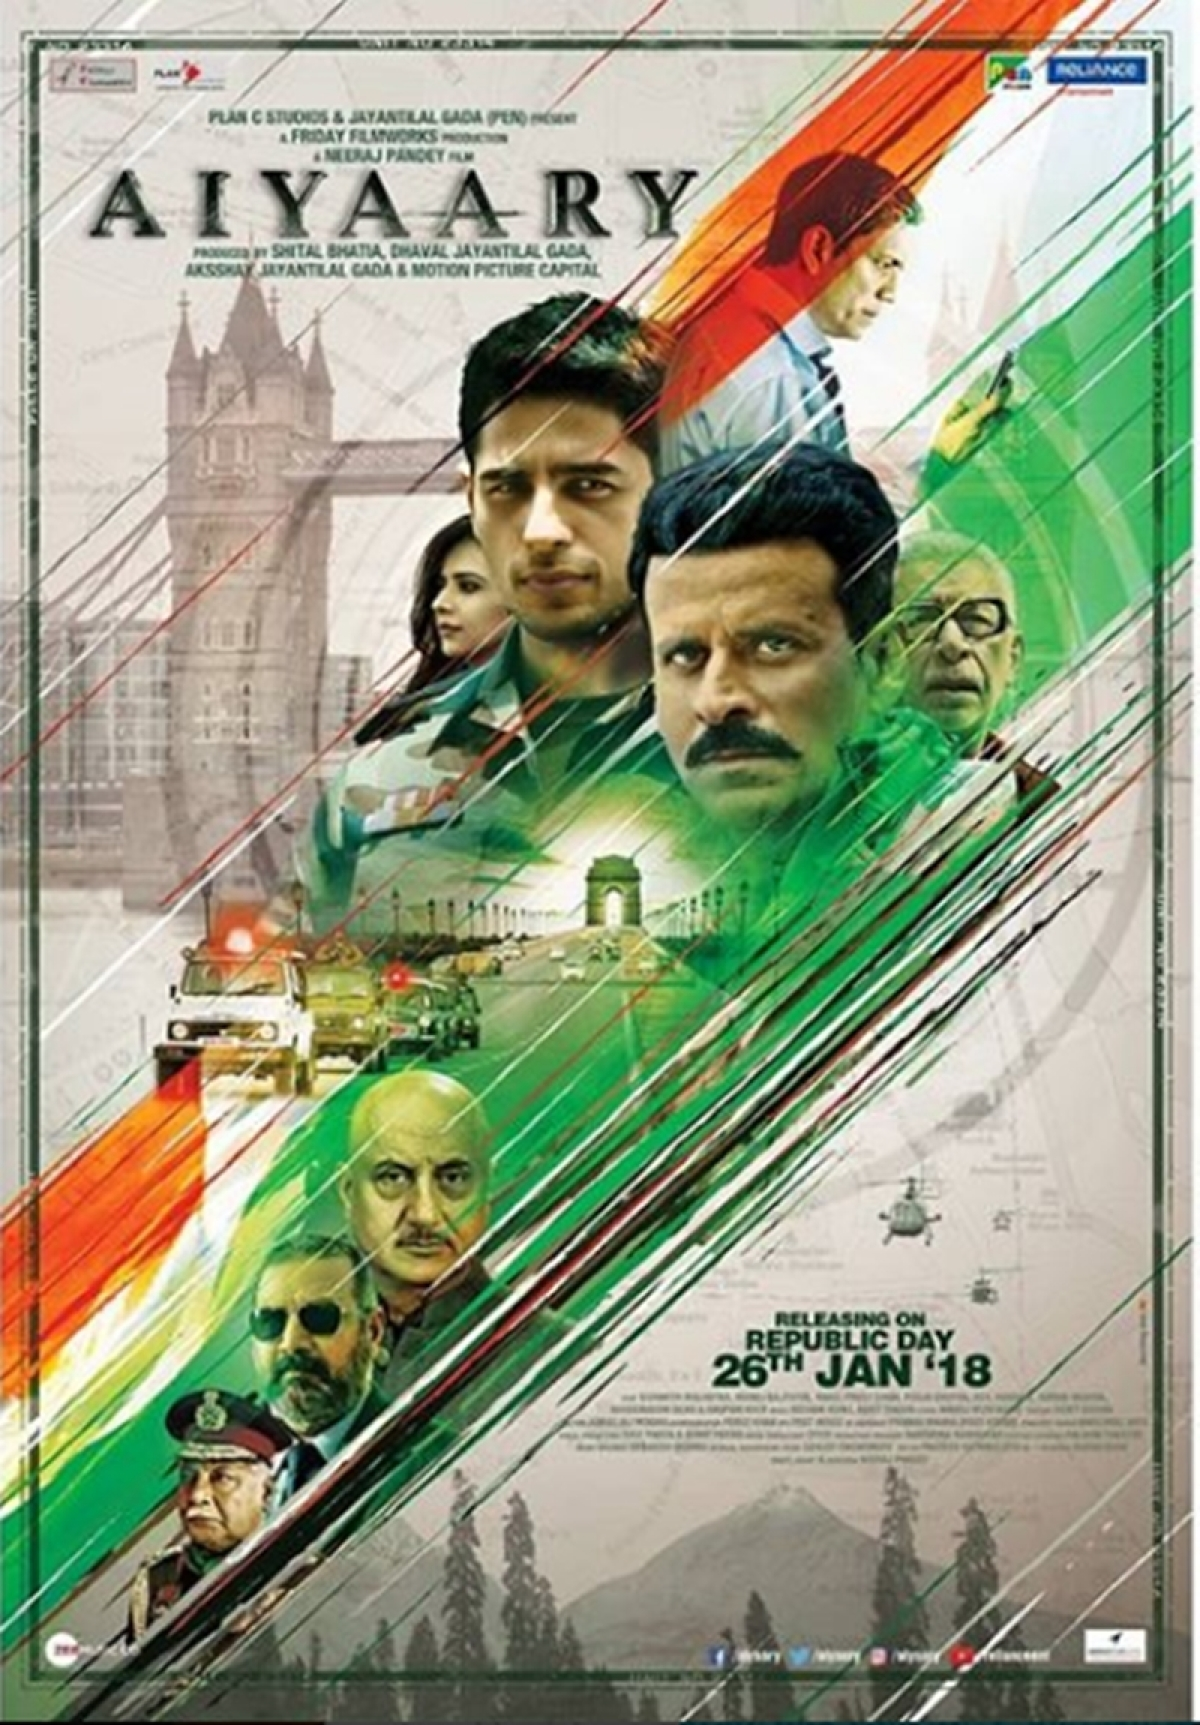 First look: Manoj Bajpayee and Sidharth Malhotra's 'Aiyaary' is a tribute to brave soldiers